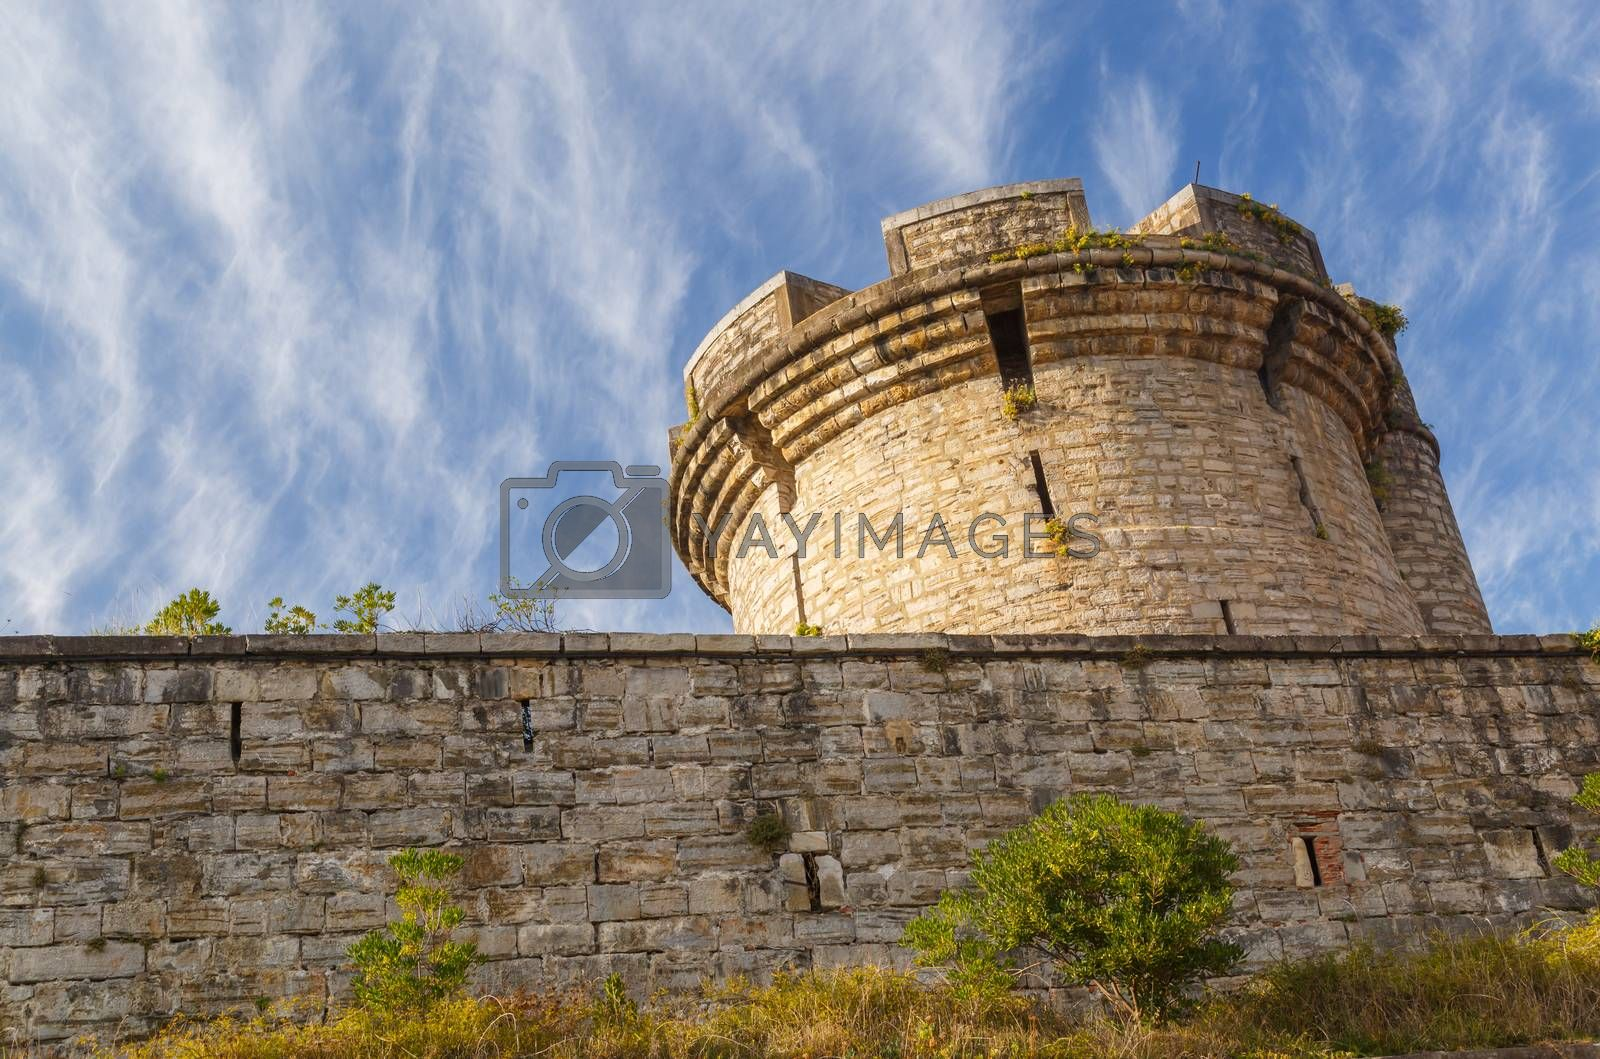 Royalty free image of Ancient tower with stone wall by pixinoo